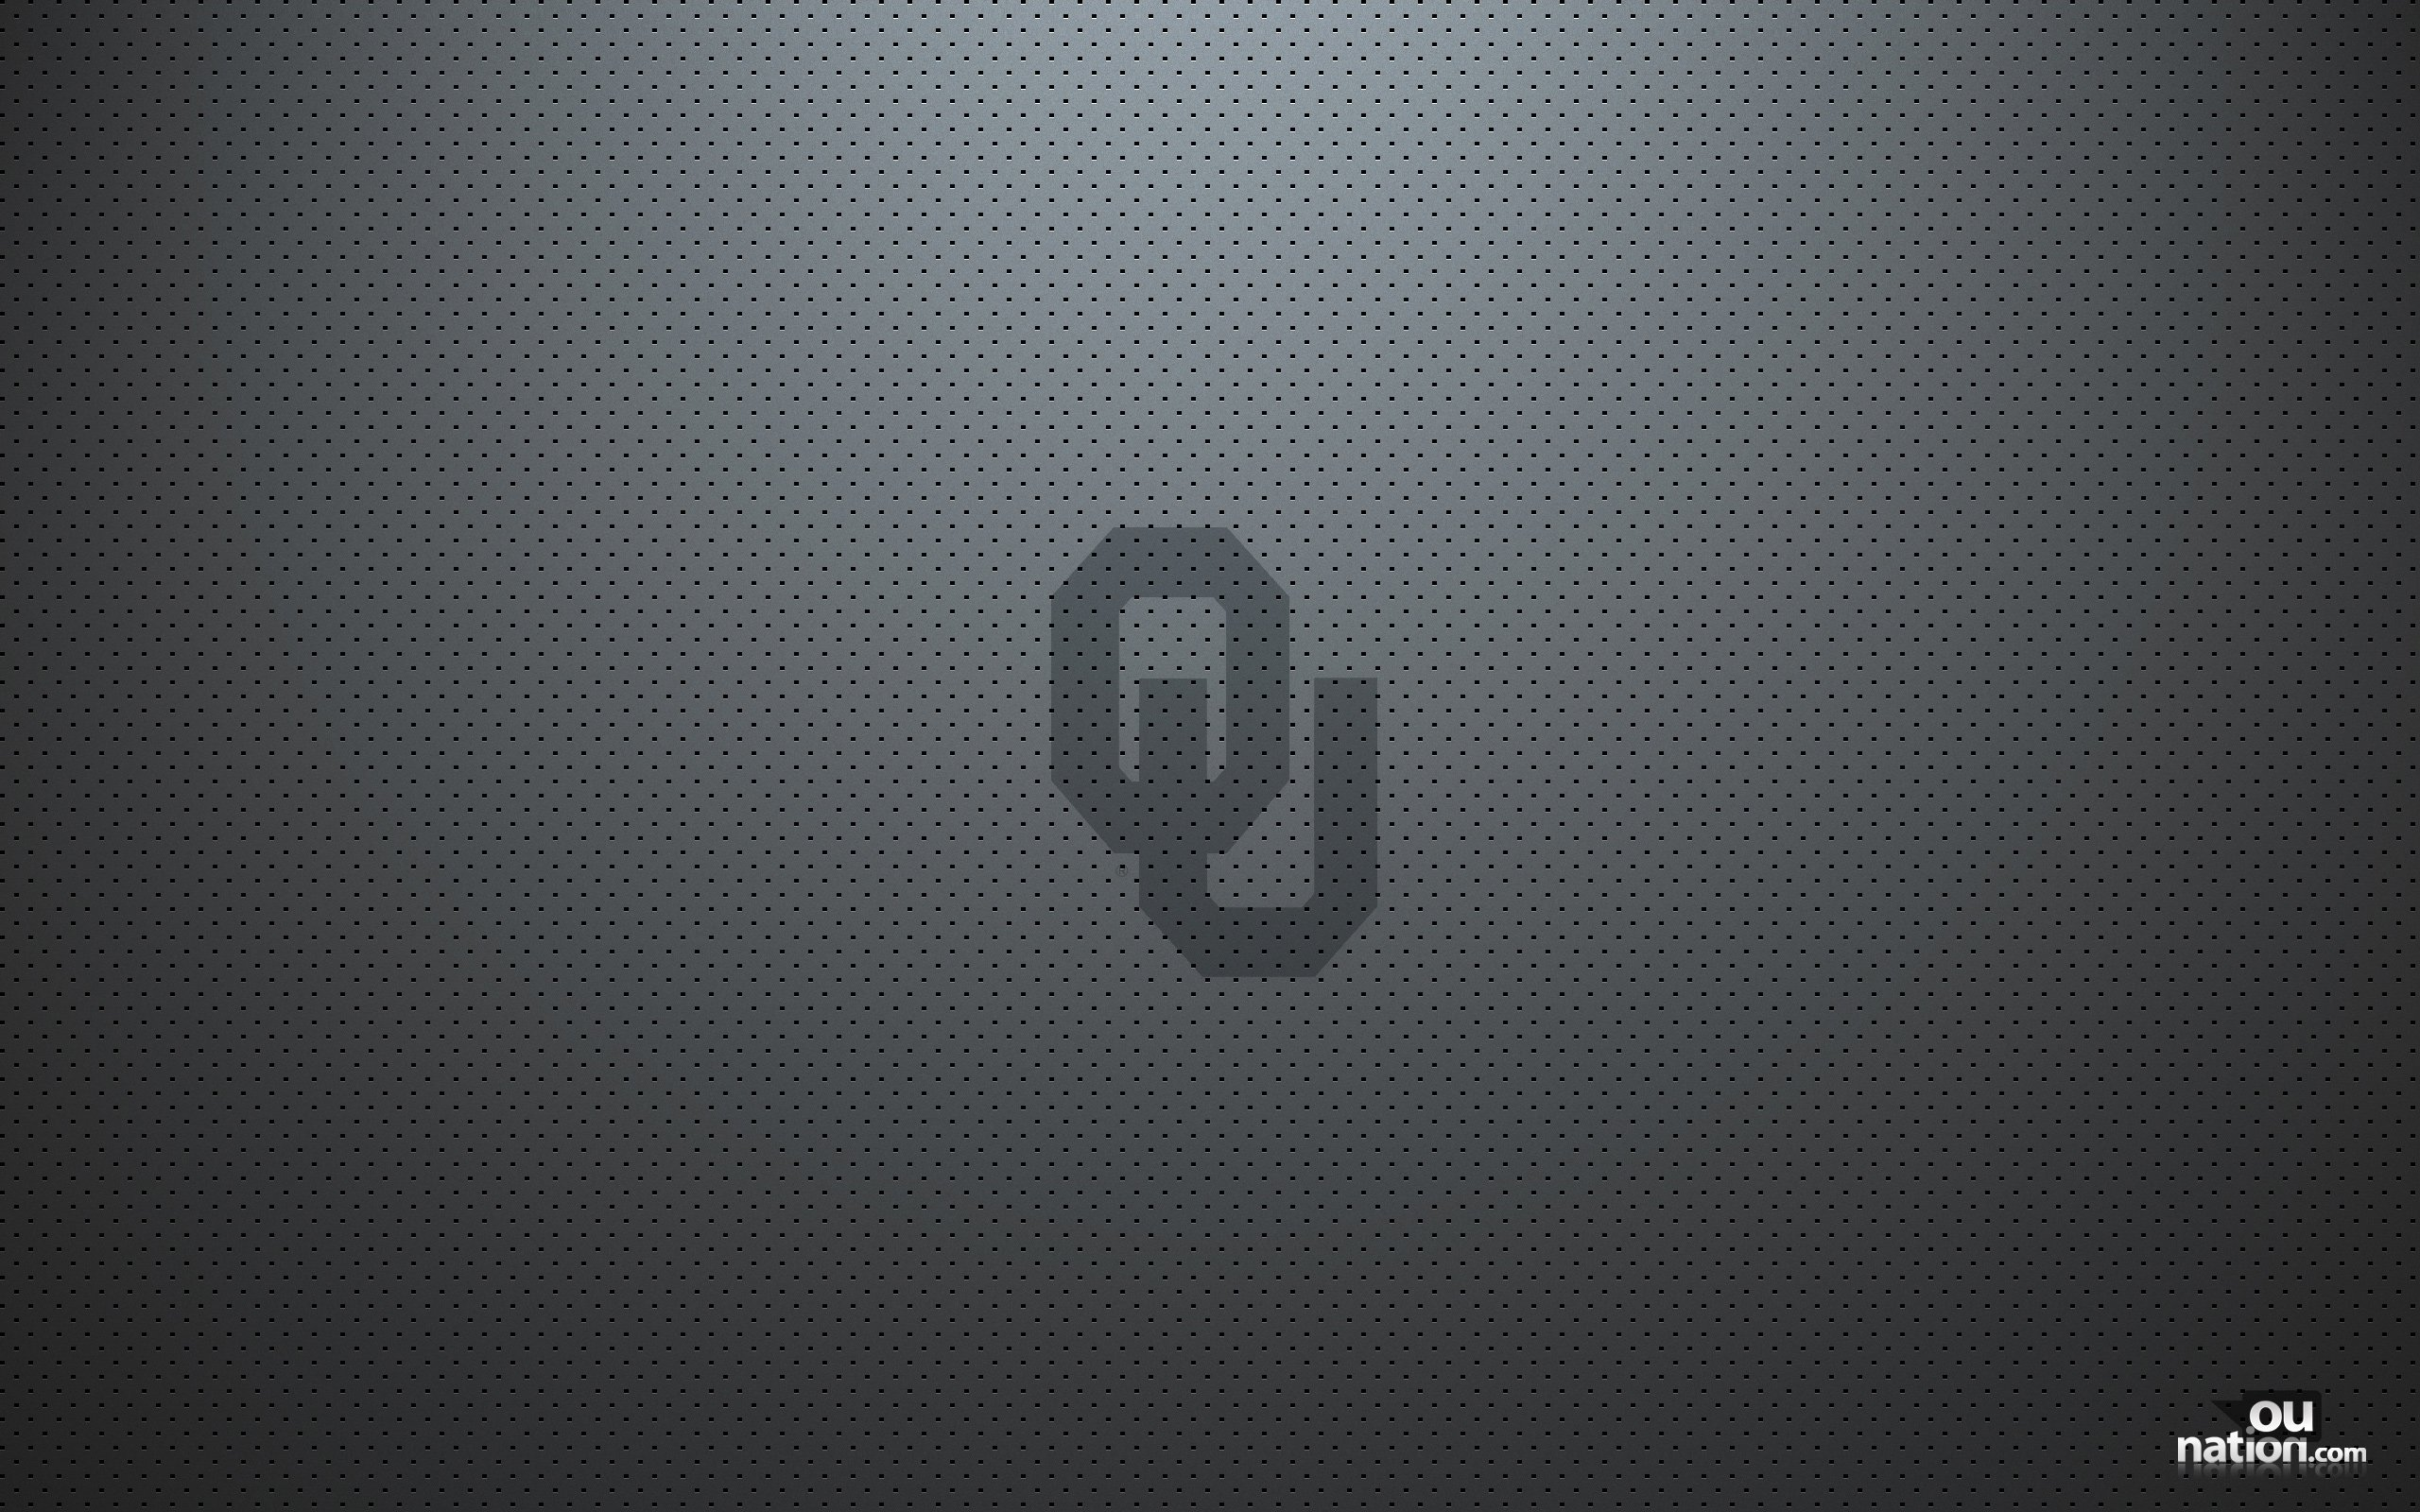 OKLAHOMA SOONERS college football wallpaper 2560x1600 594065 2560x1600